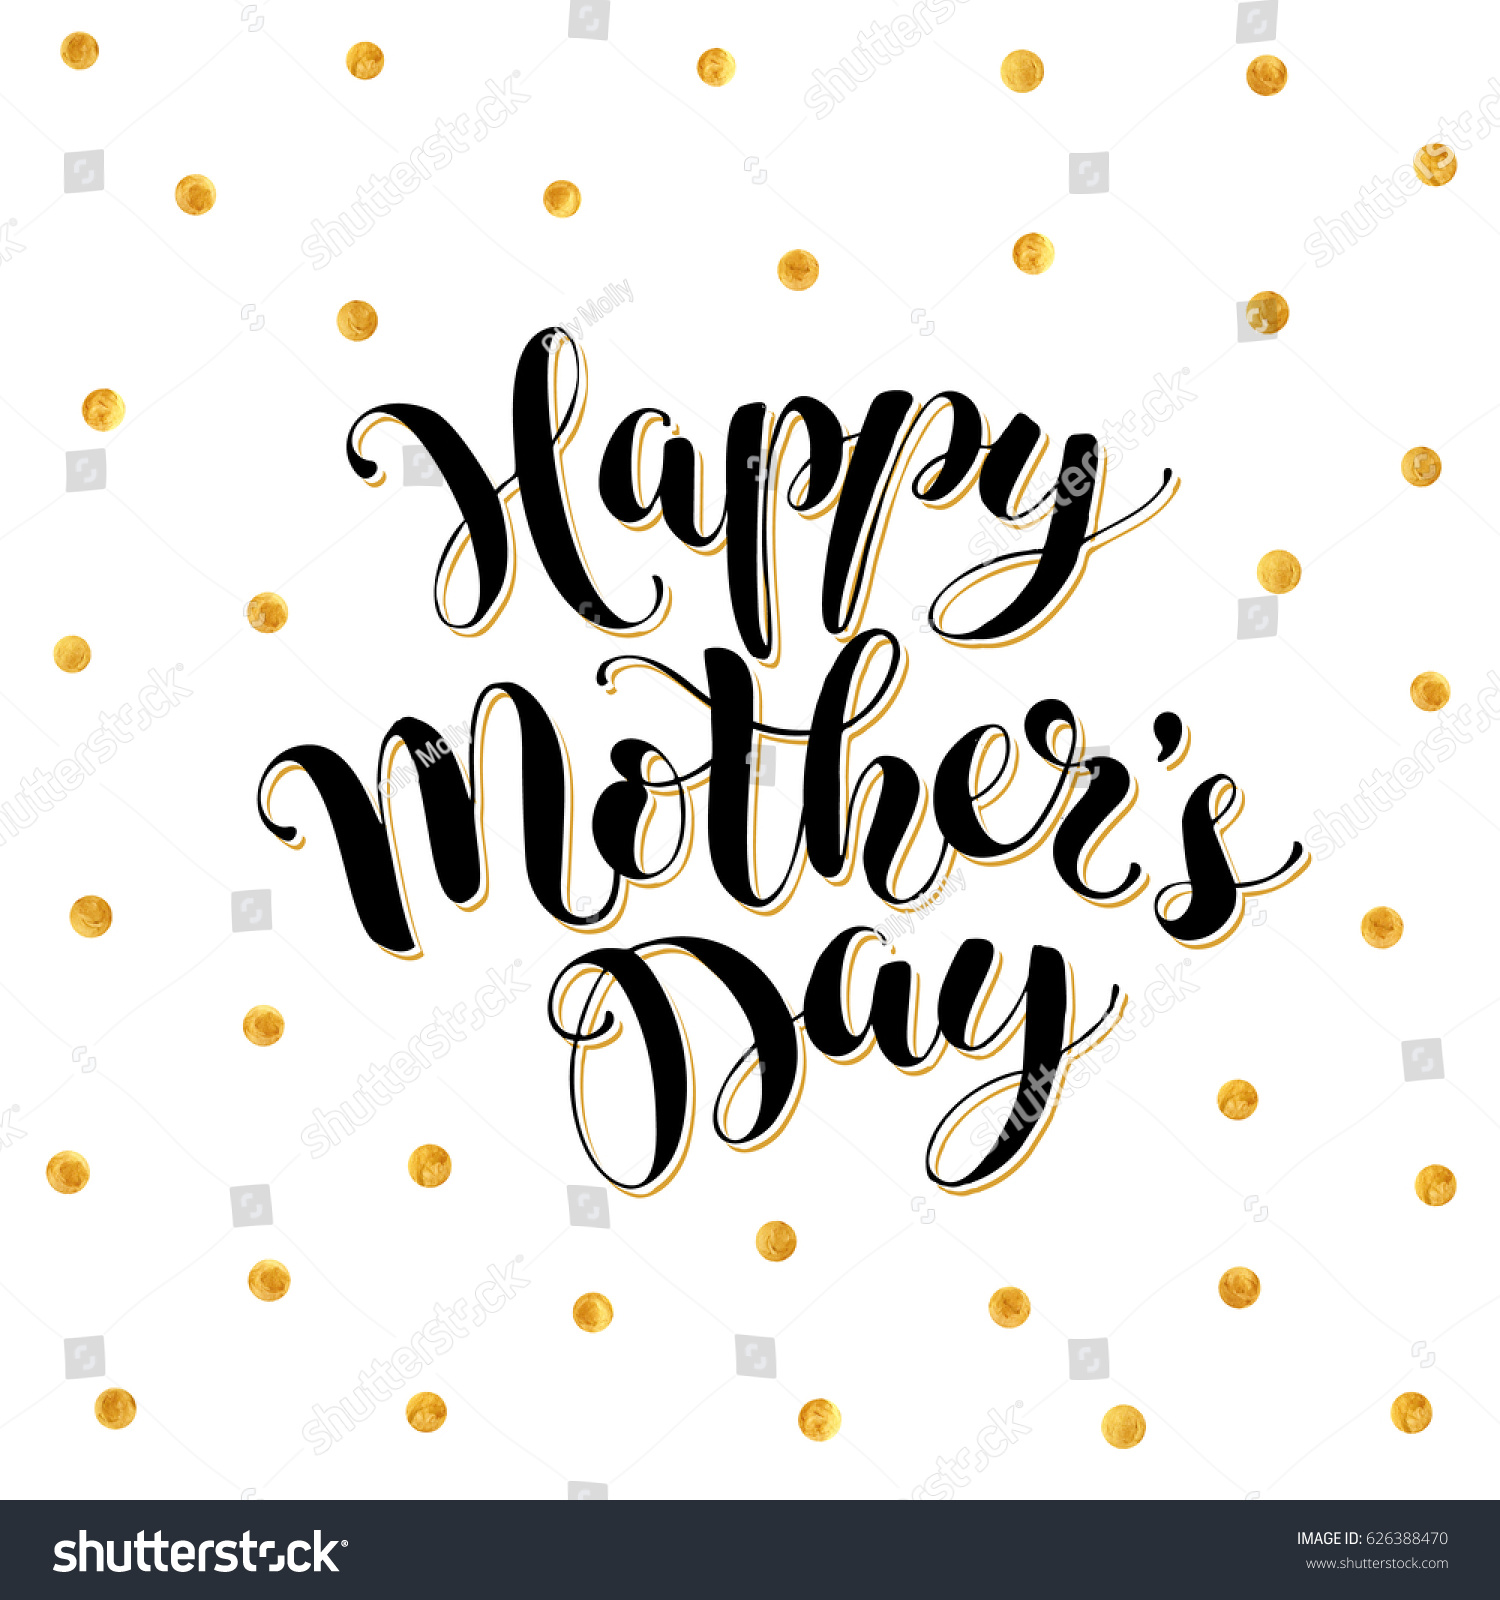 Mothers day greeting card template happy stock vector 626388470 mothers day greeting card template happy mothers day wording with golden dots on background kristyandbryce Choice Image